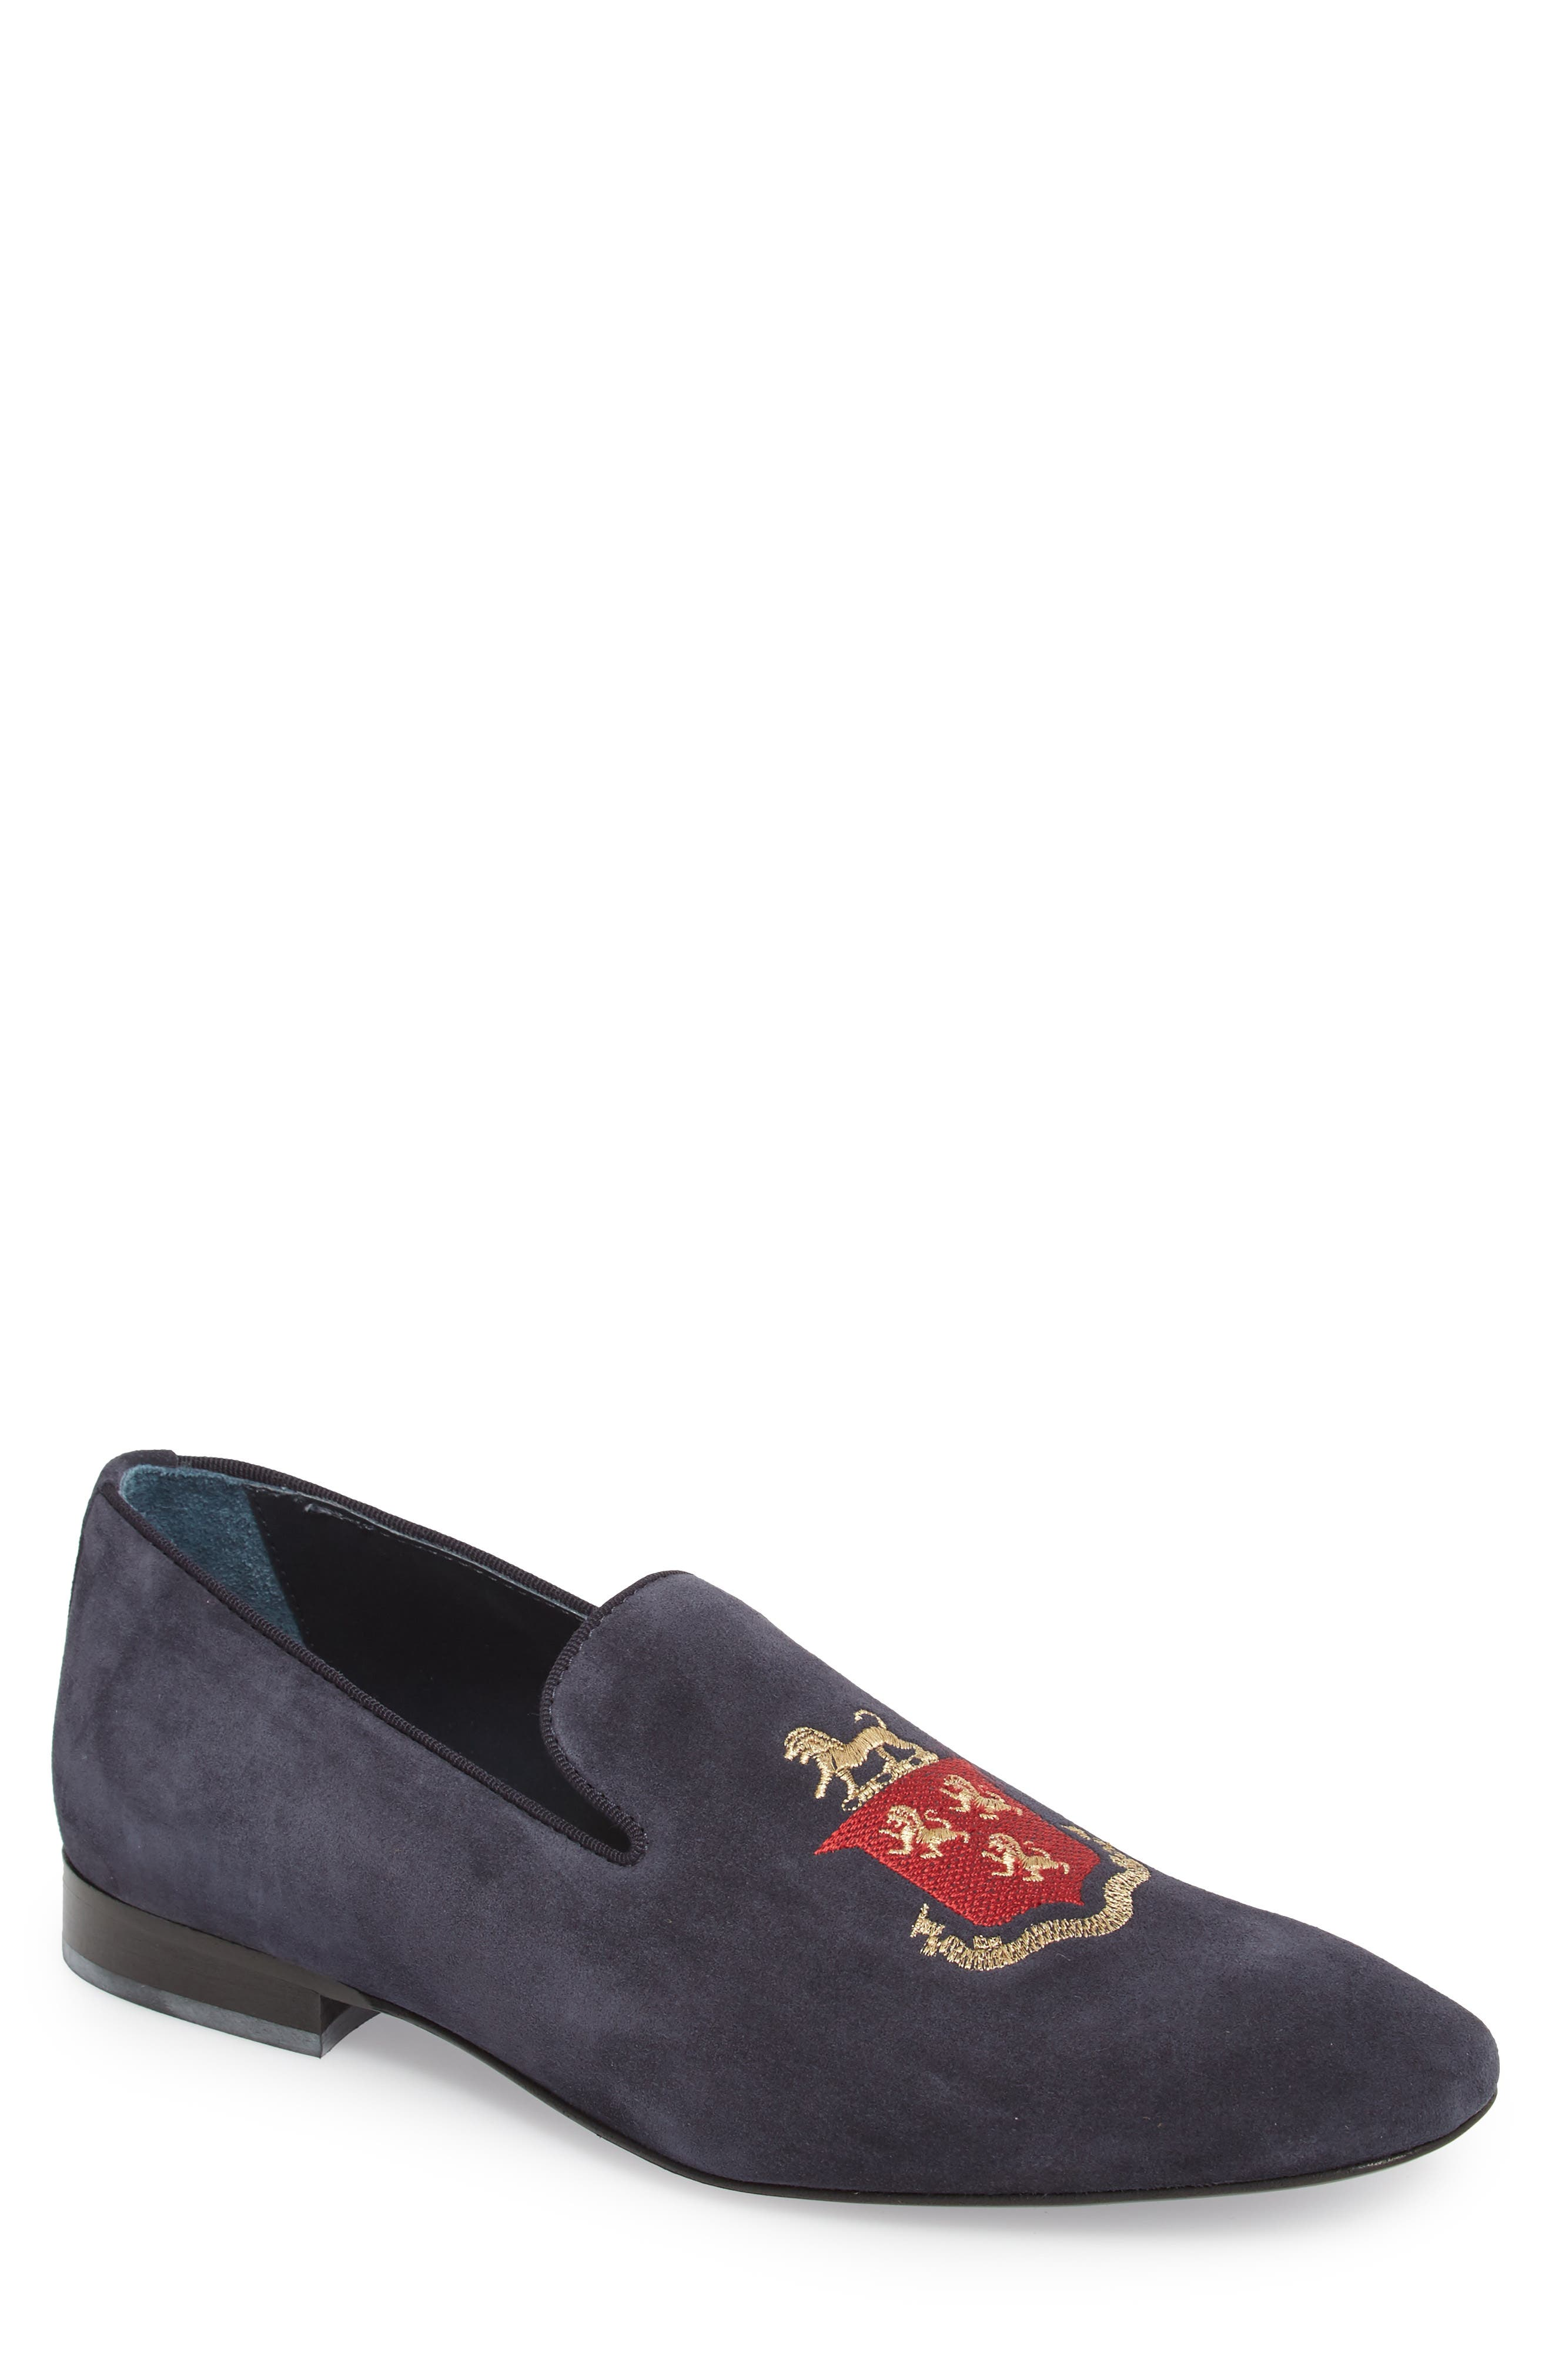 Altos Embroidered Venetian Loafer,                         Main,                         color, Navy